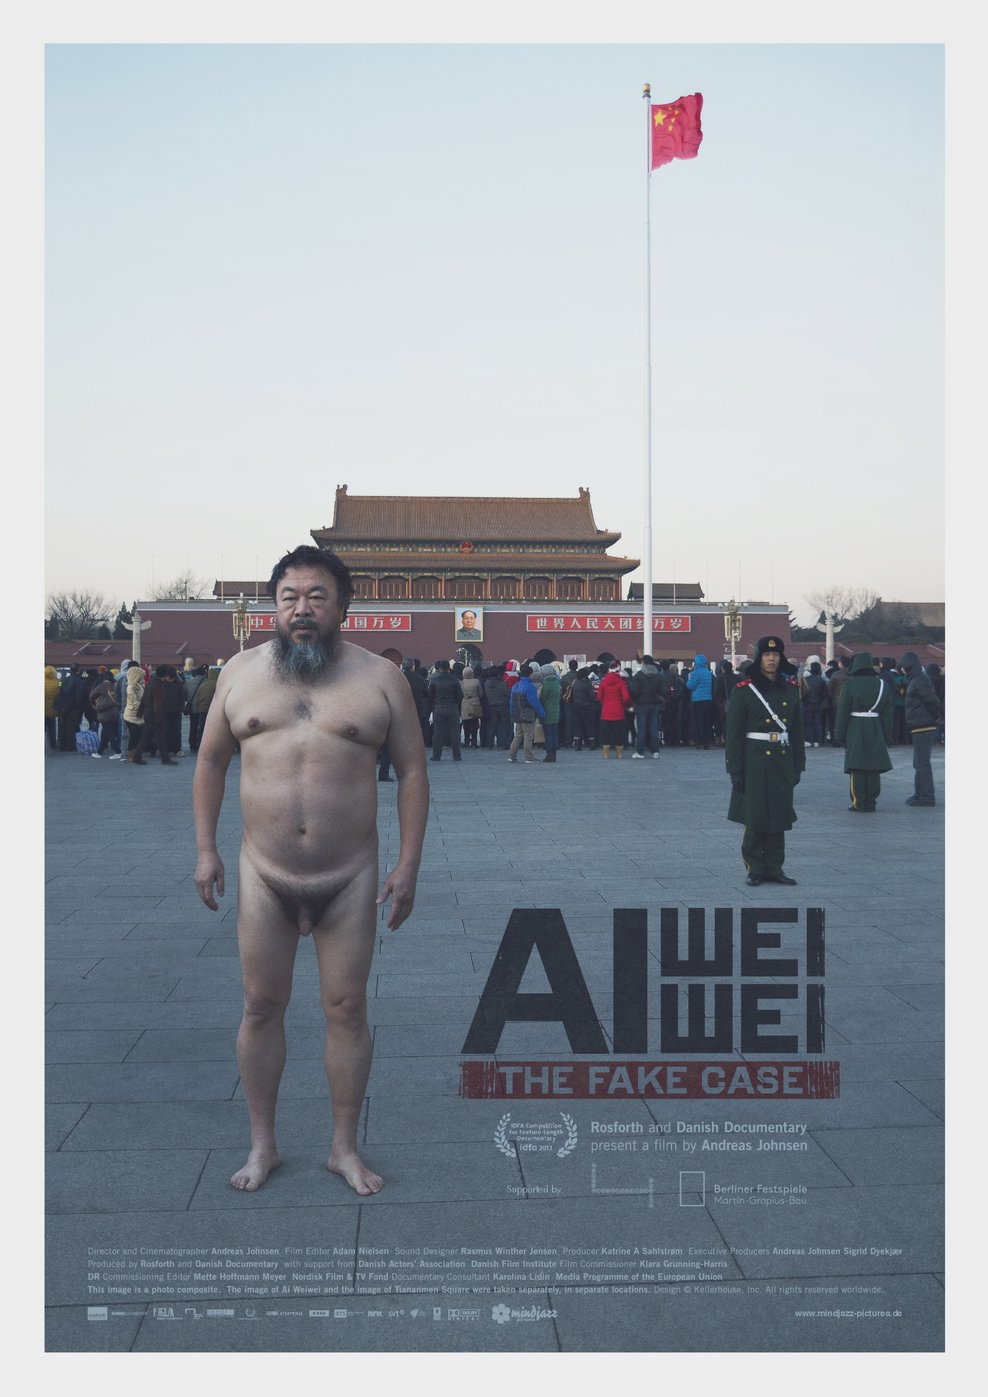 Ai WeiWei - The Fake Case (Poster)